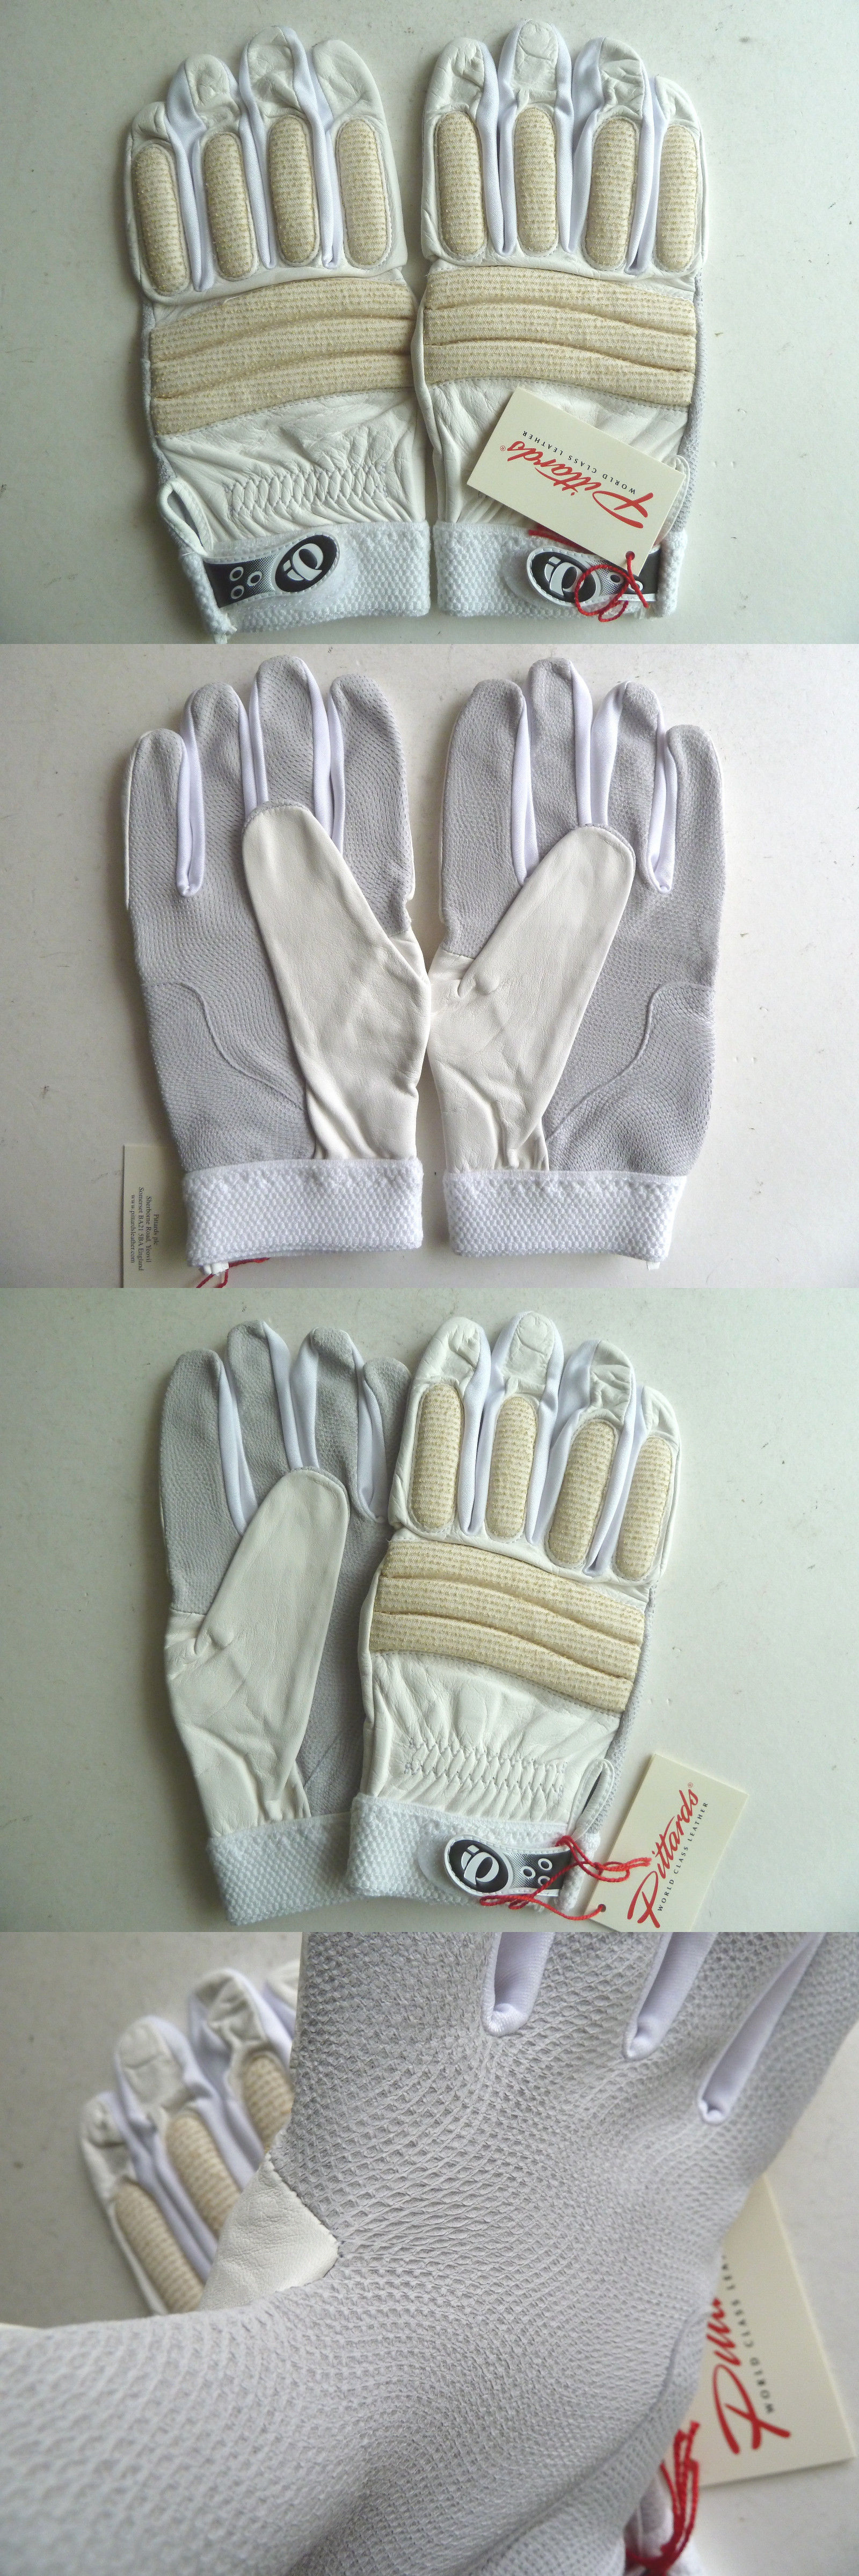 Gloves pearl izumi track racing gloves white leather